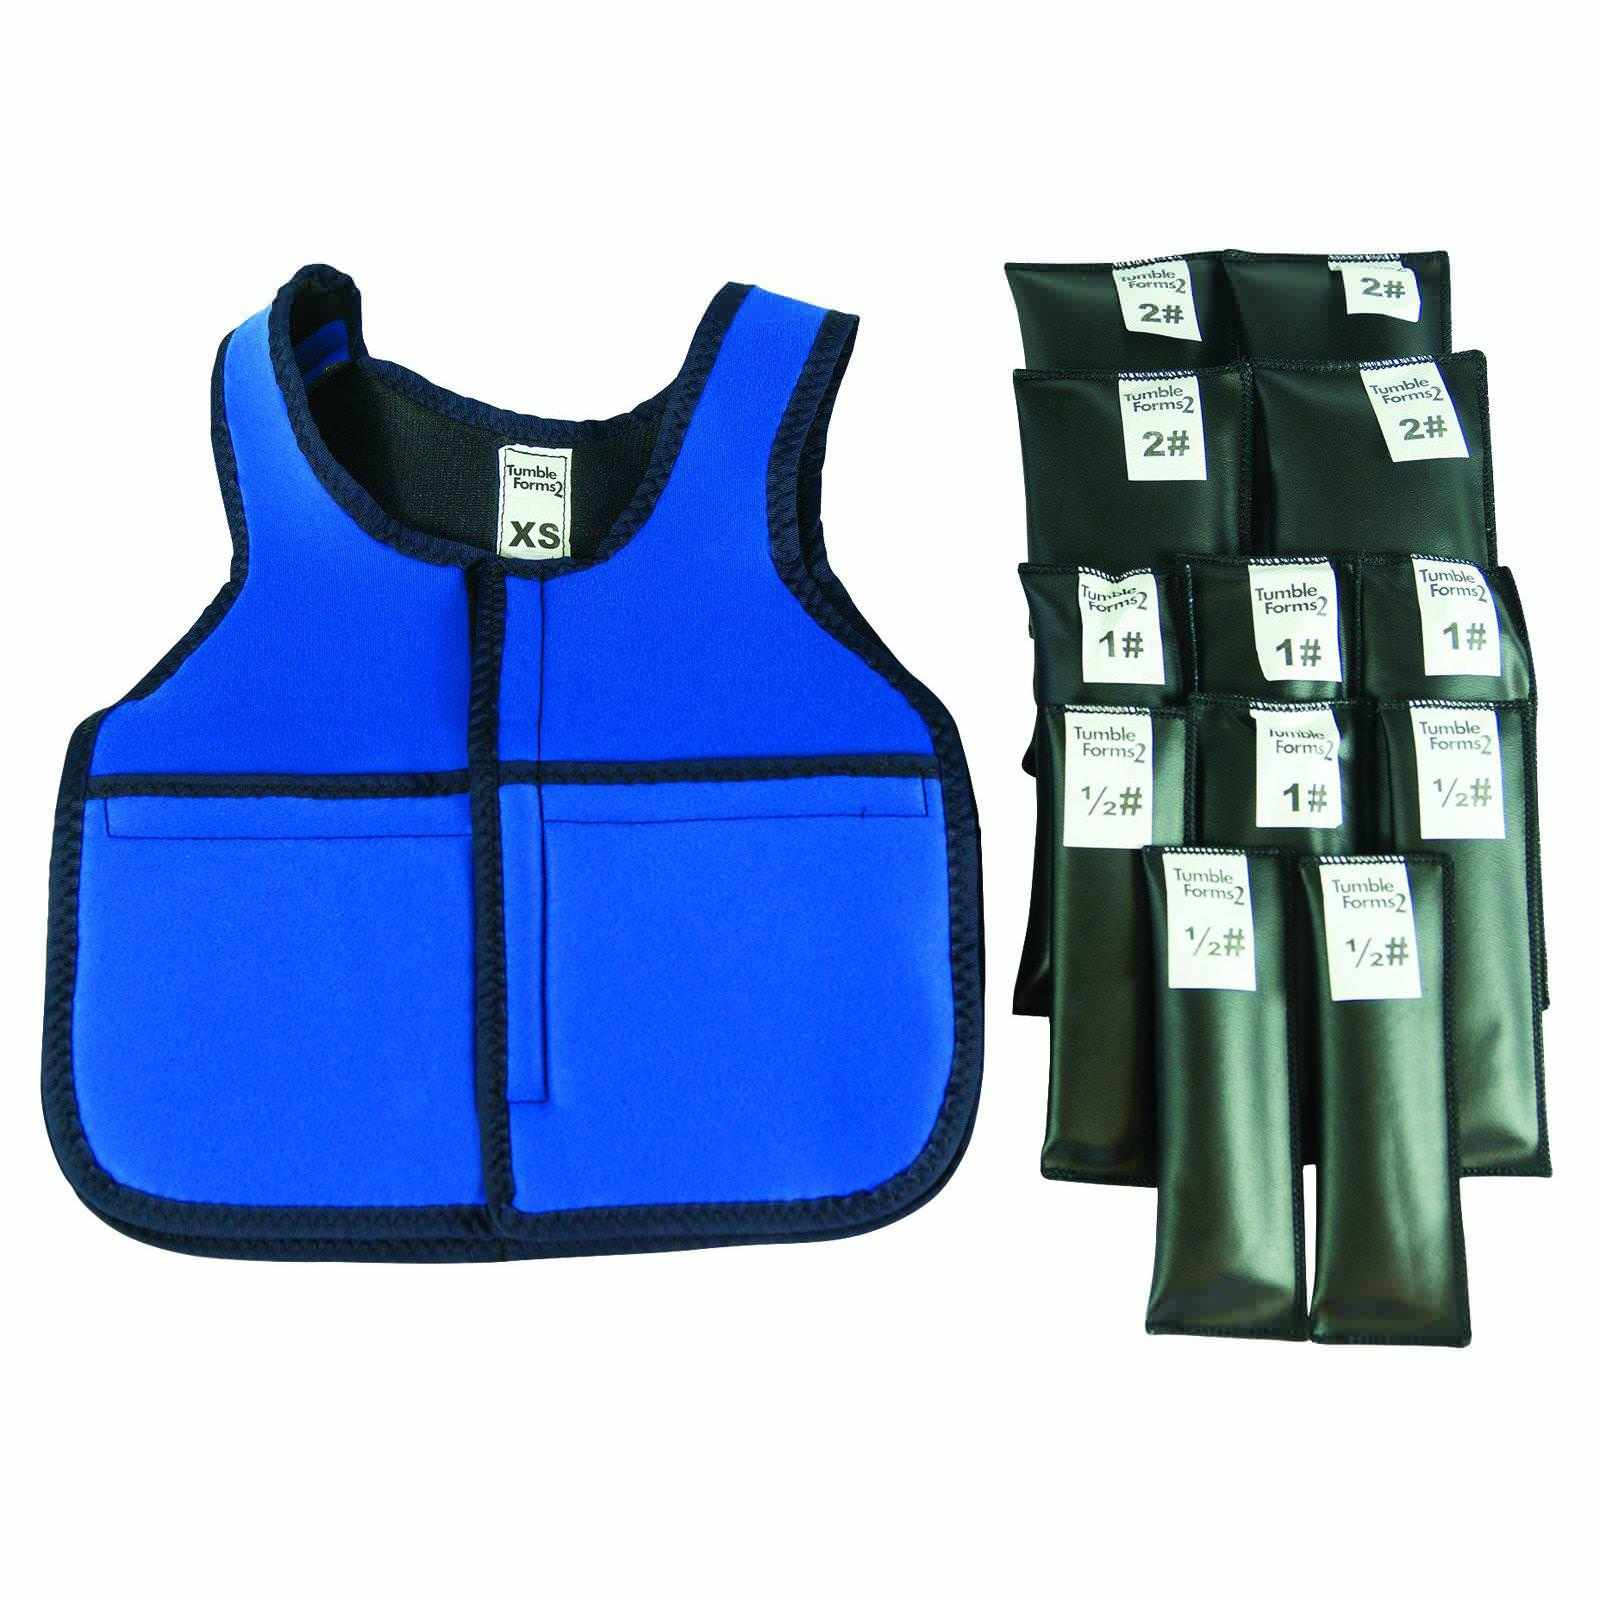 Tumble Forms Weighted Vest